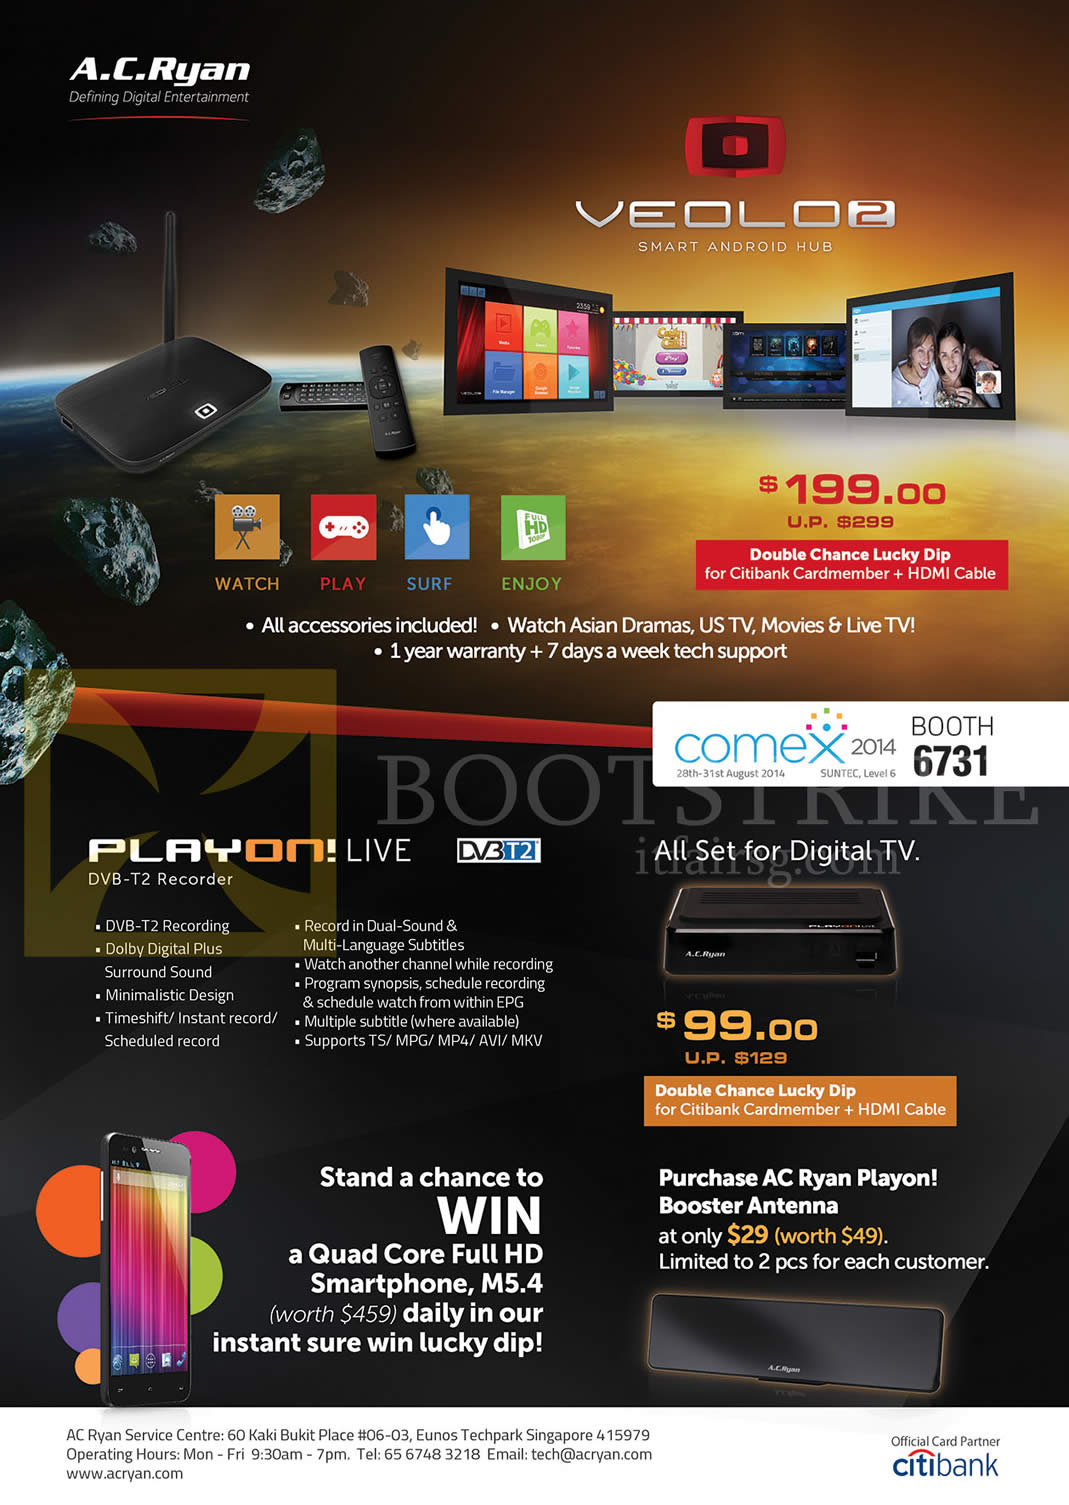 COMEX 2014 price list image brochure of AC Ryan Veolo 2 Android Hub, Play On Live DVB-T2 Recorder